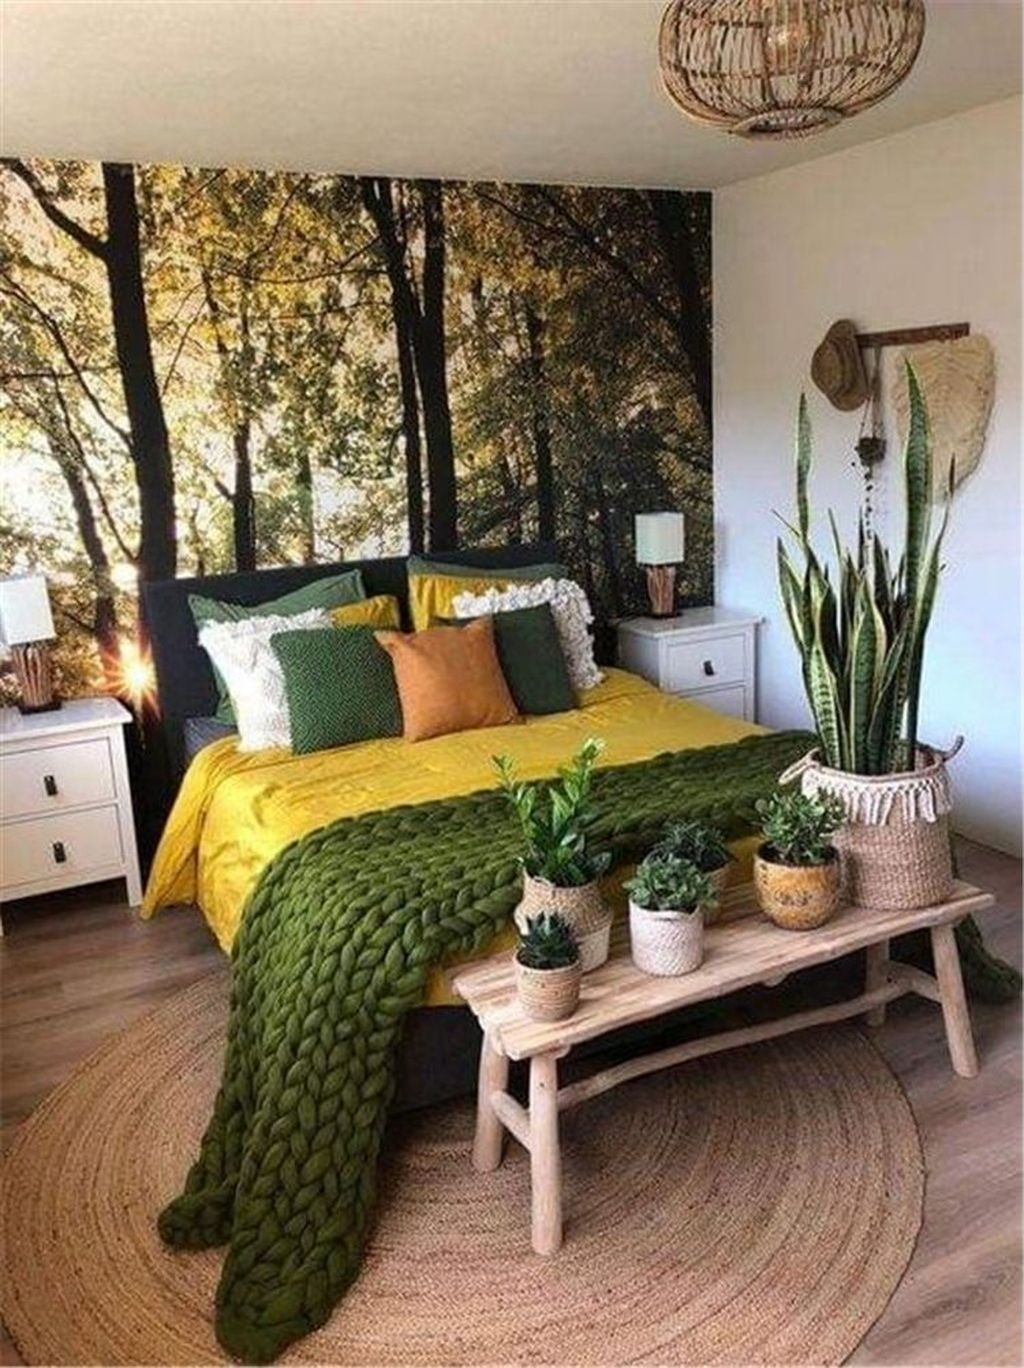 bedroom decor fascinating ideas on a budget for 2019